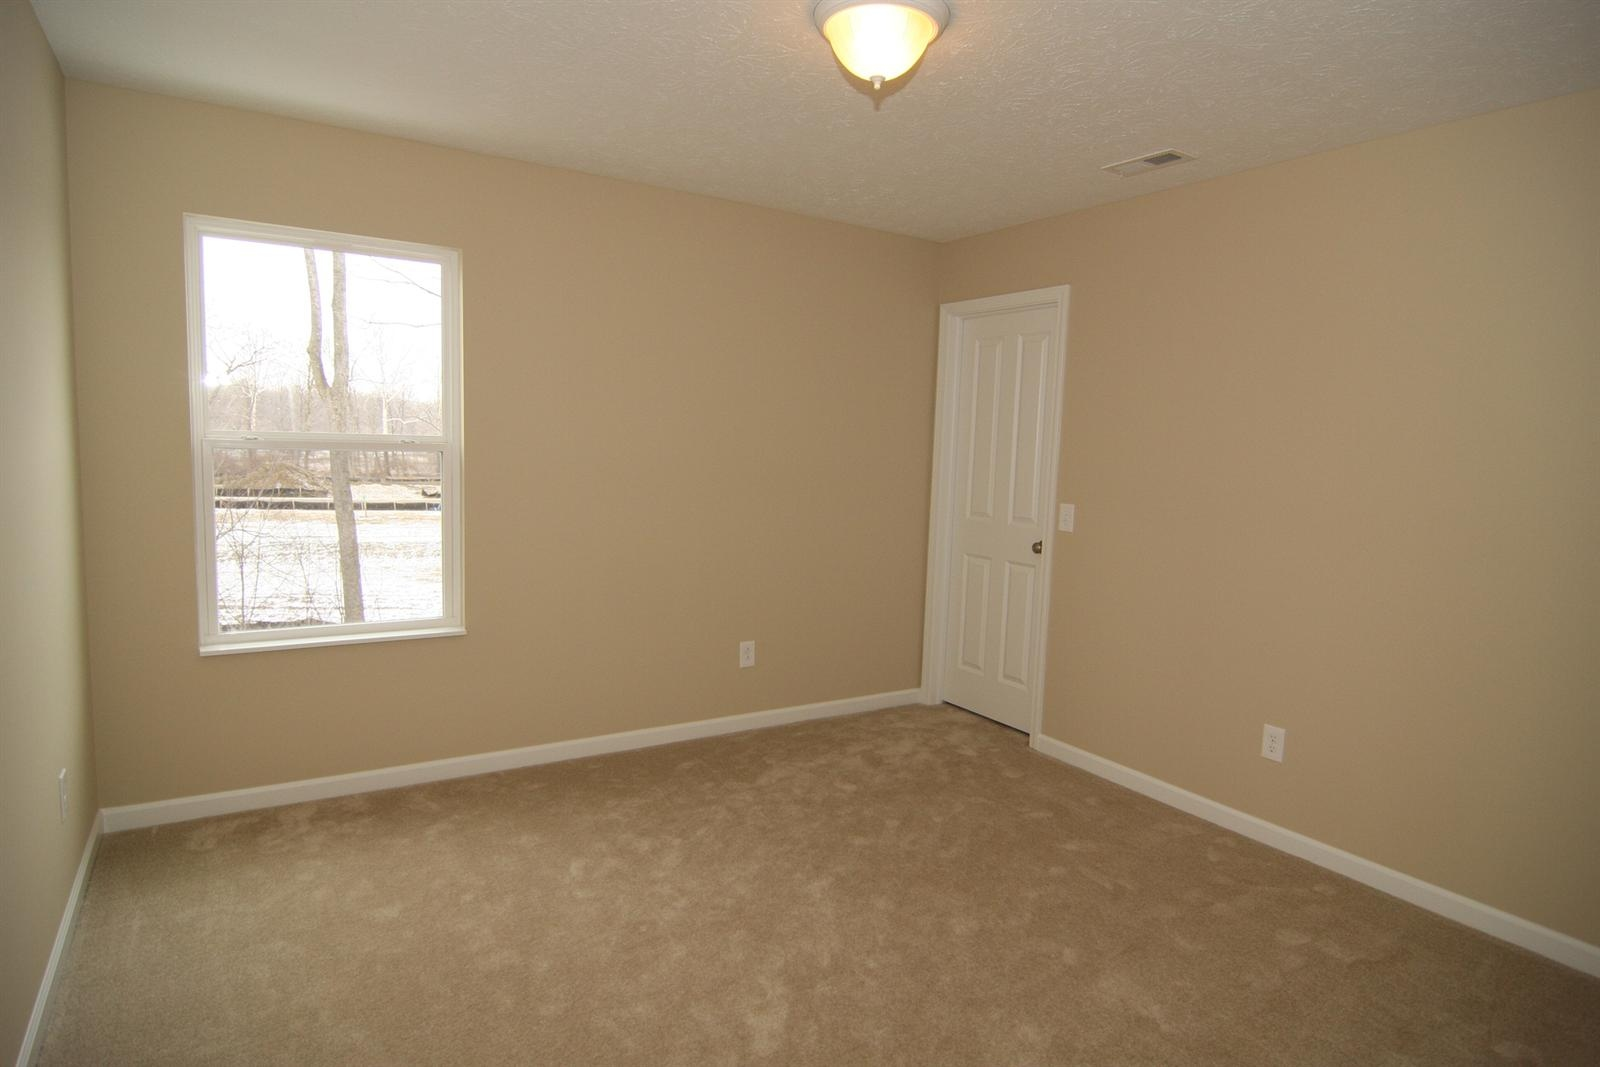 Real Estate Photography - 4852 Corydon Ln, Indianapolis, IN, 46239 - Location 14